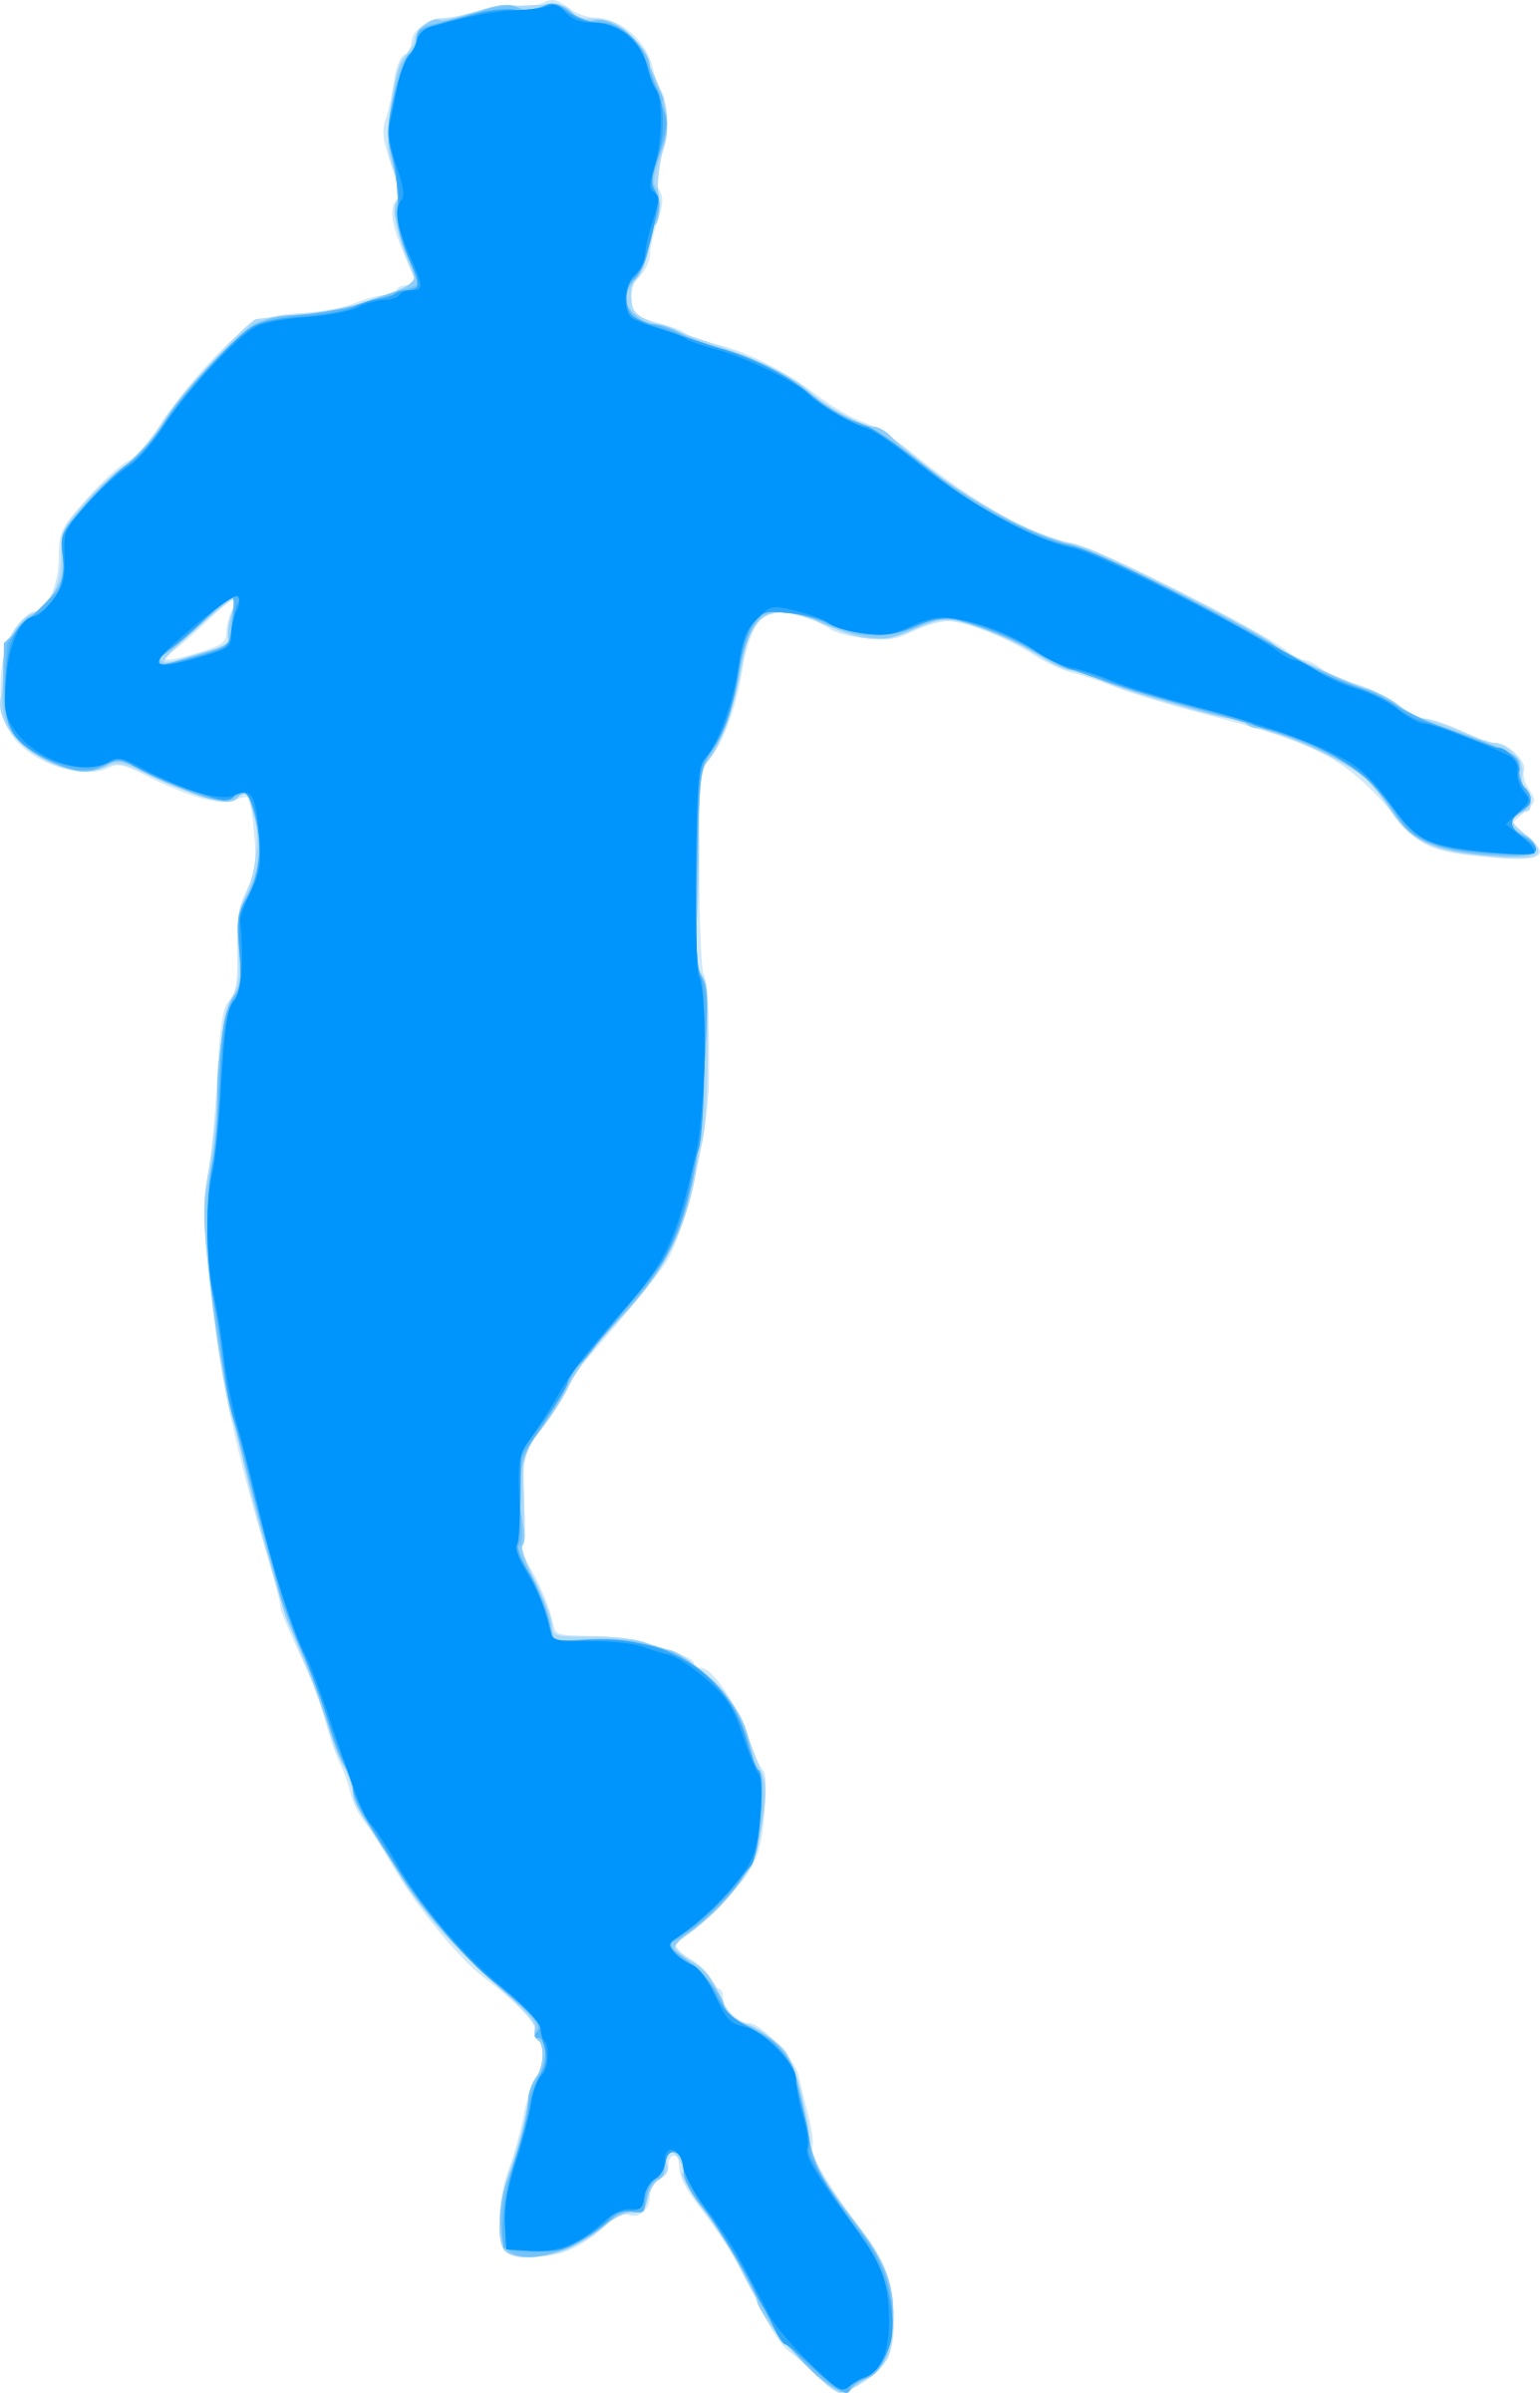 Clipart blue football player clip free download Silhouette Football player Clip art - snooker 1545*2400 transprent ... clip free download